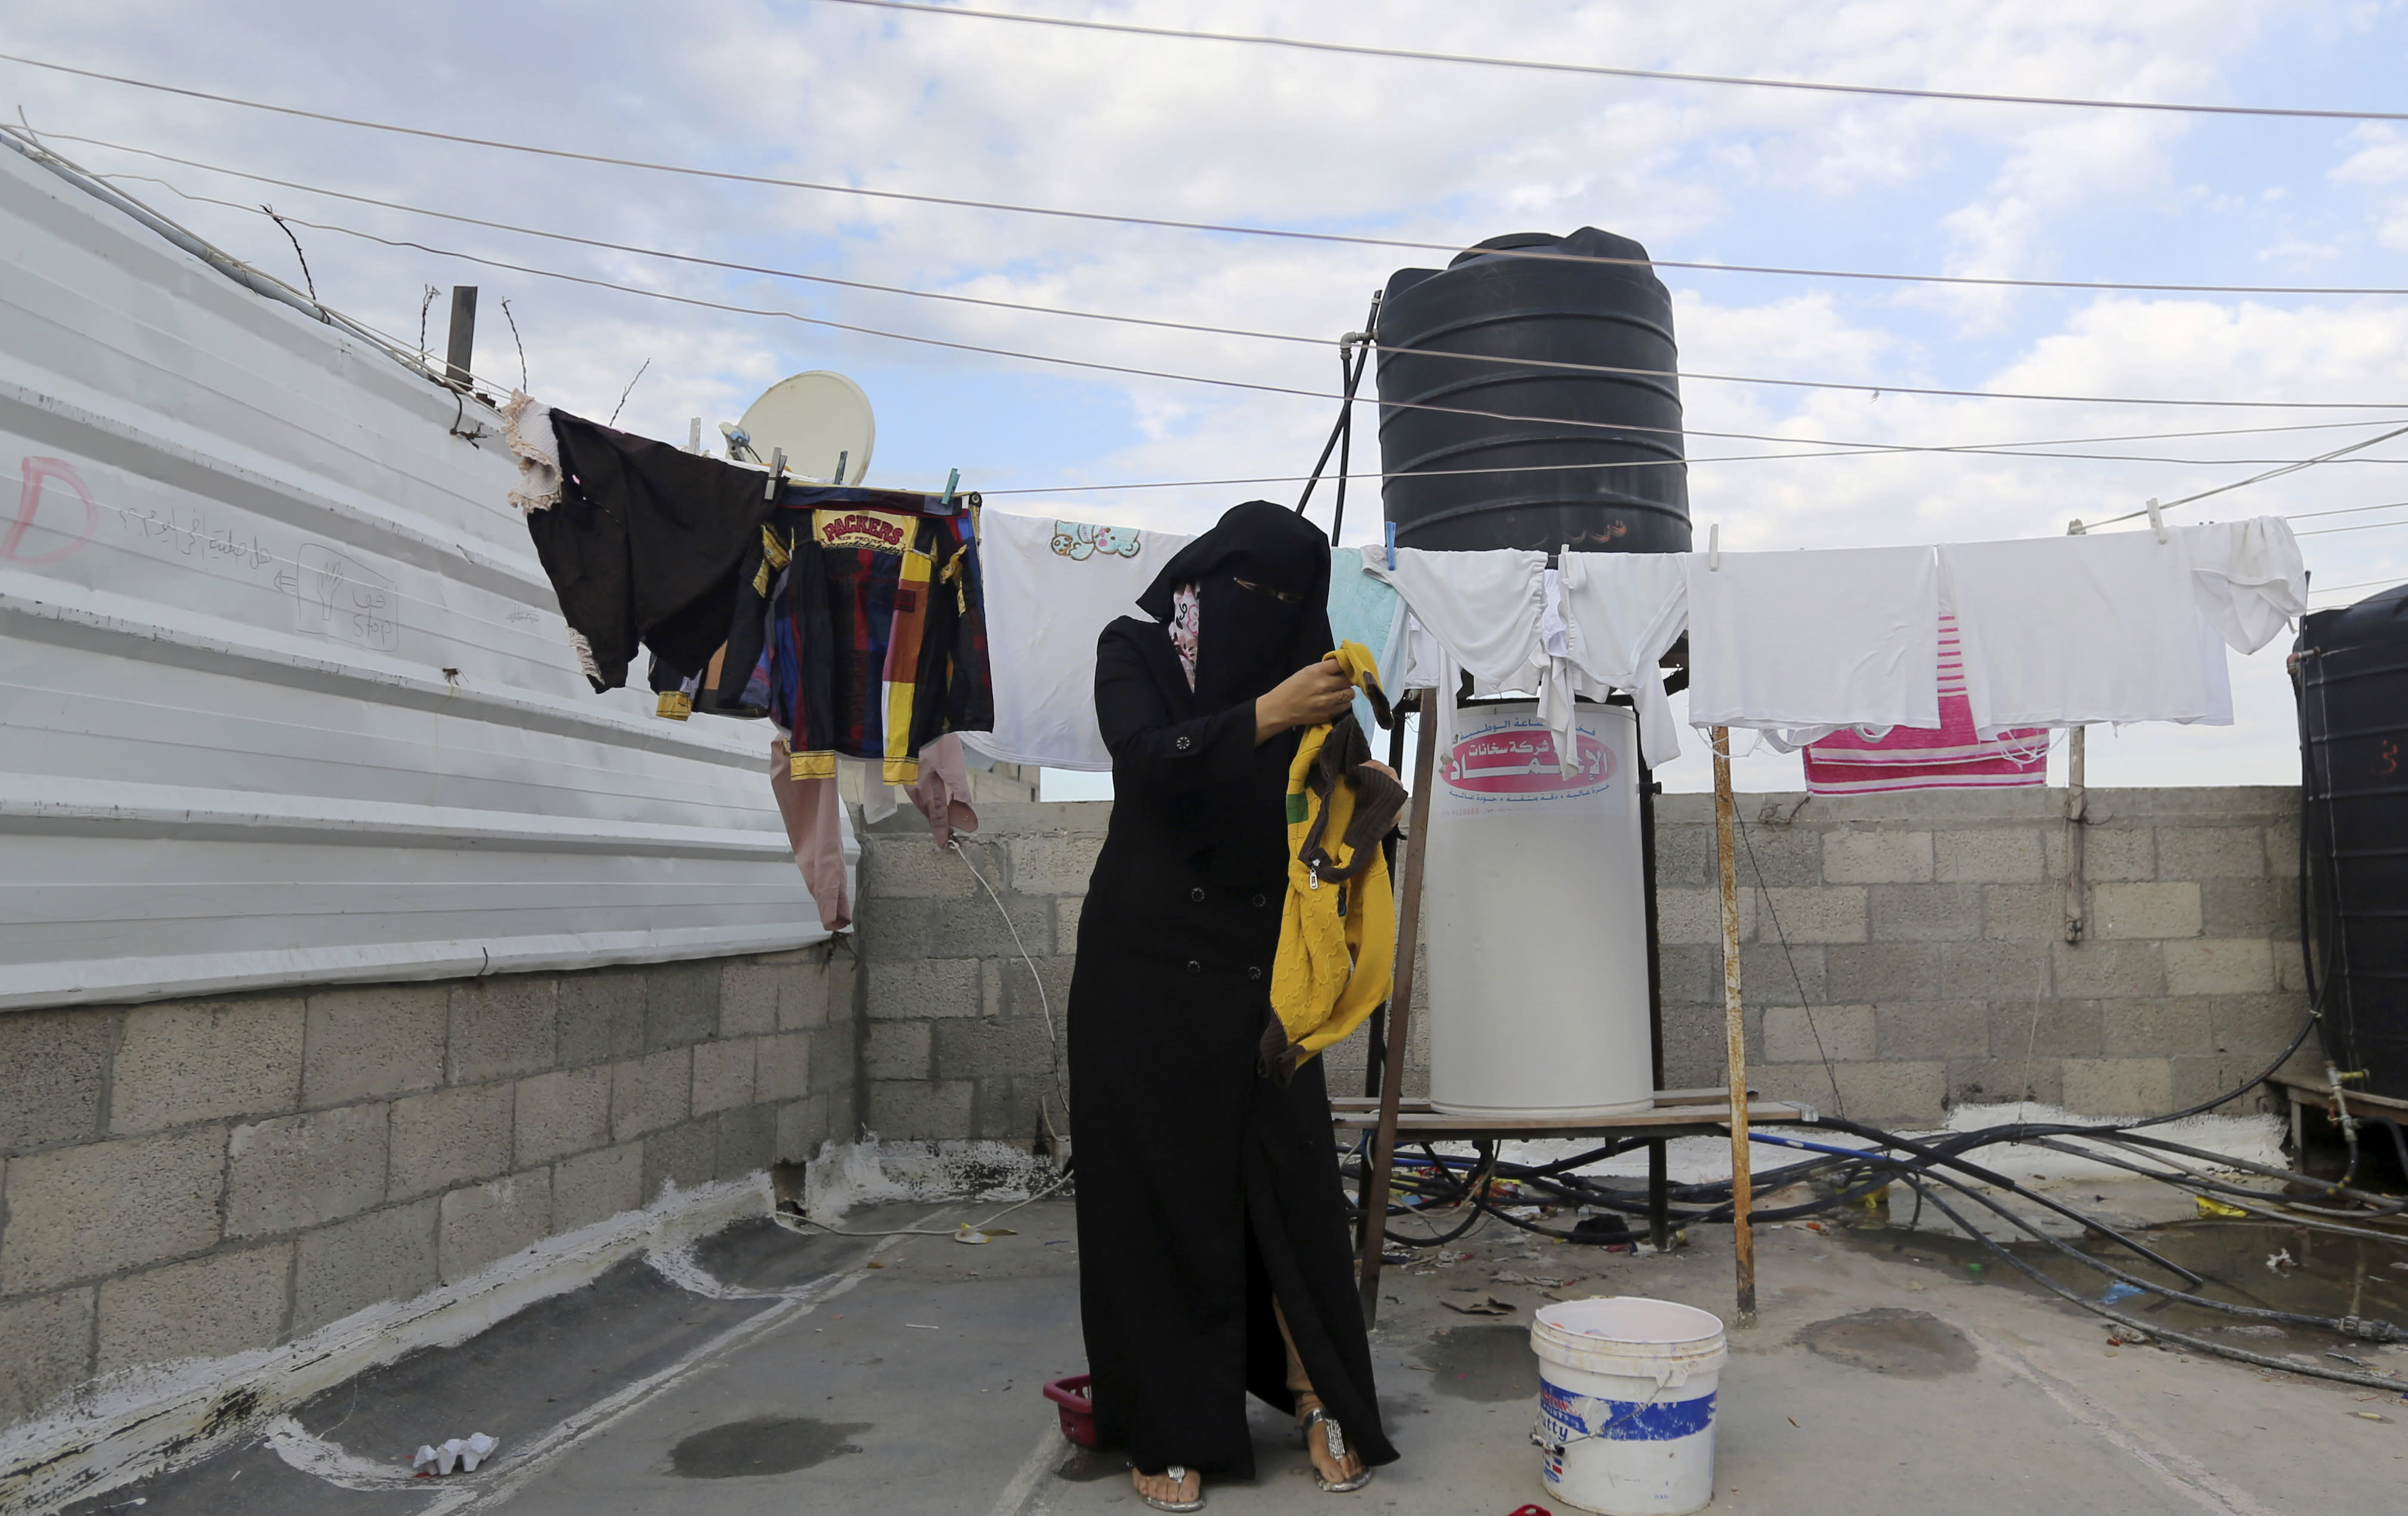 In this Tuesday, March 11, 2014 photo, Minatullah Zeitouniya, 29, hangs laundry to dry on the roof of the apartment building she and her family live in Gaza City in the northern Gaza Strip. Gaza's Hamas rulers have been hit by the worst economic crisis since seizing the territory seven years ago and face growing discontent, even among core supporters, because there's no sign of relief from a blockade enforced not only by Israel but also by a suddenly hostile Egypt. (AP Photo/Hatem Moussa)